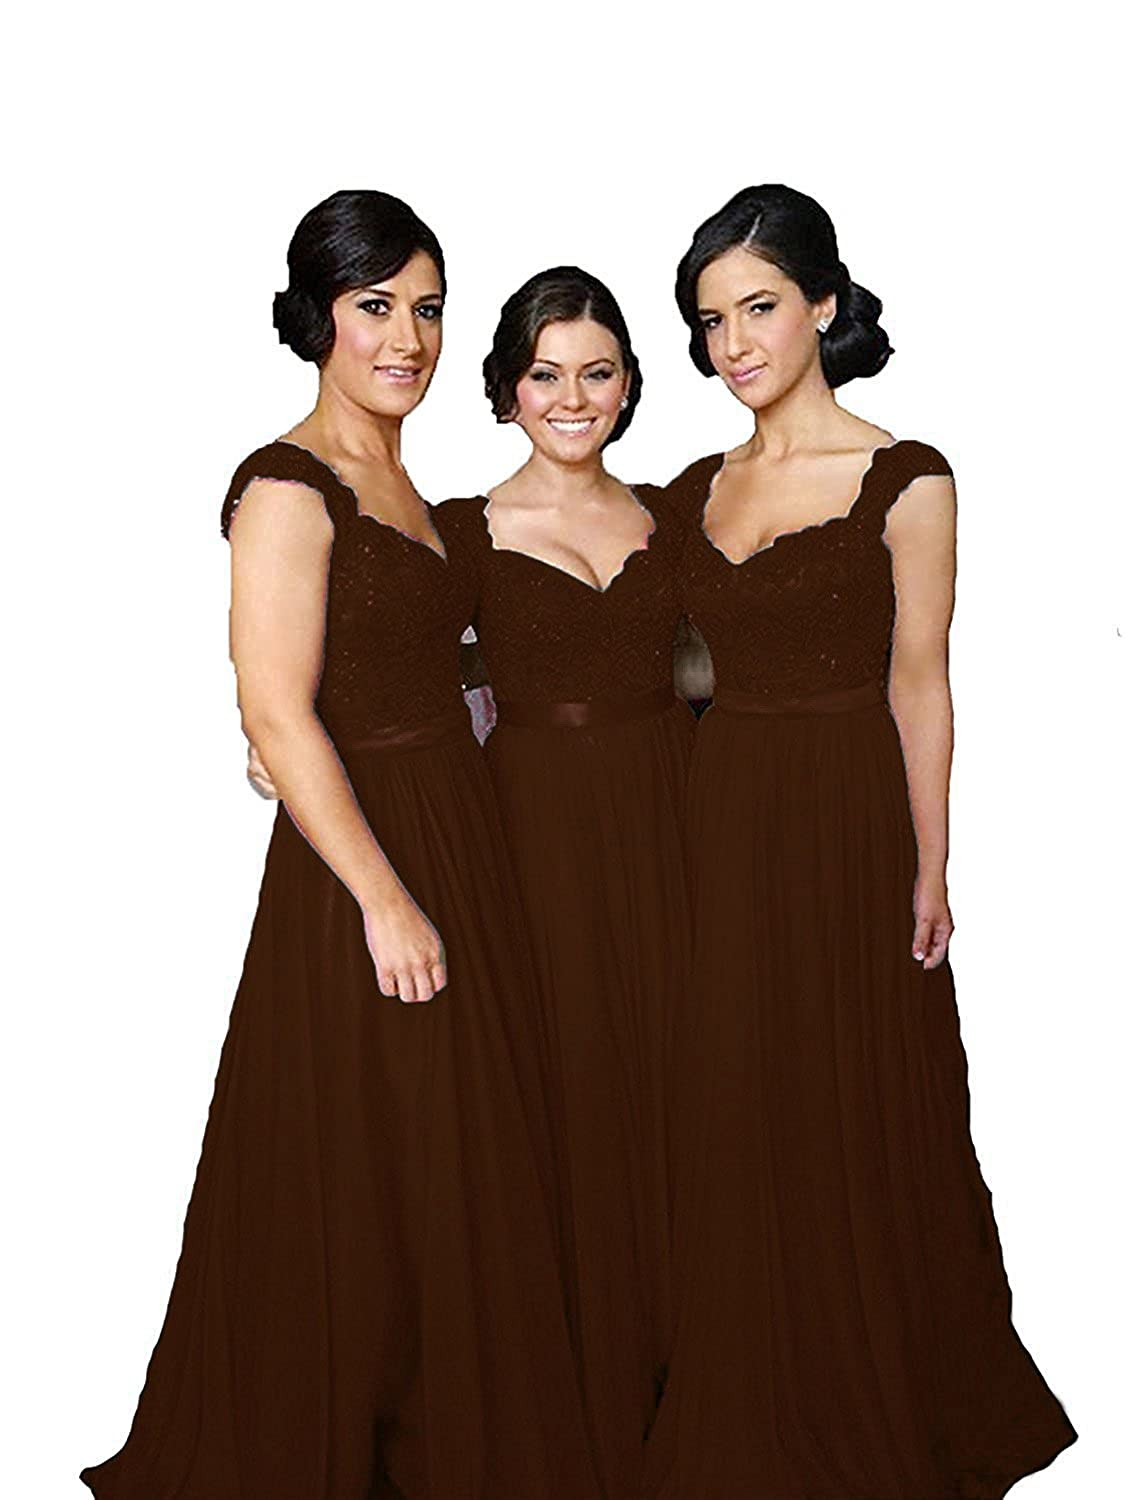 Fanciest Women' Cap Sleeve Lace Bridesmaid Dresses Long Wedding Party Gowns D642-MFN